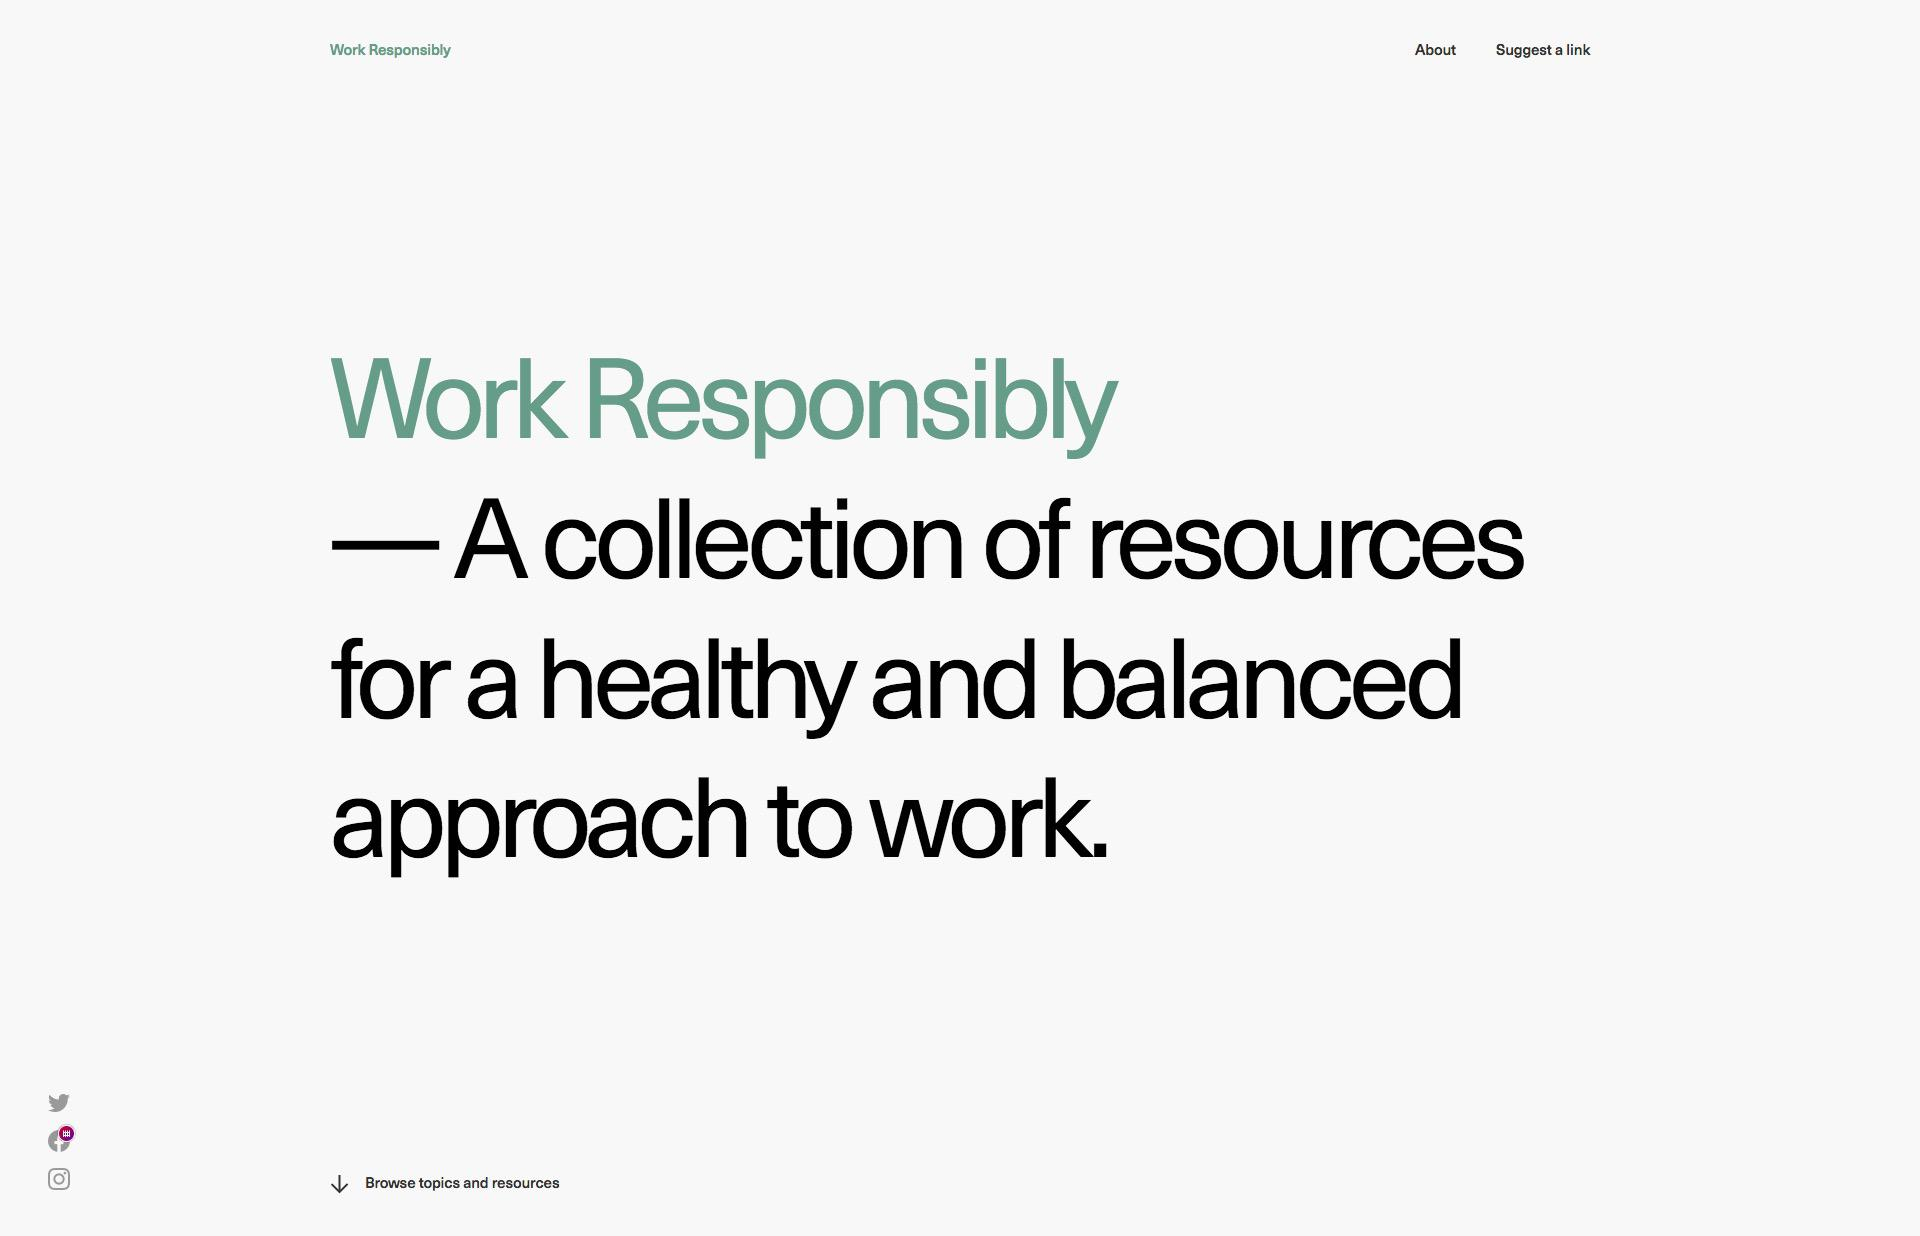 Screenshot of the website Work Responsibly, featured on The Gallery, a curated collection of minimal websites